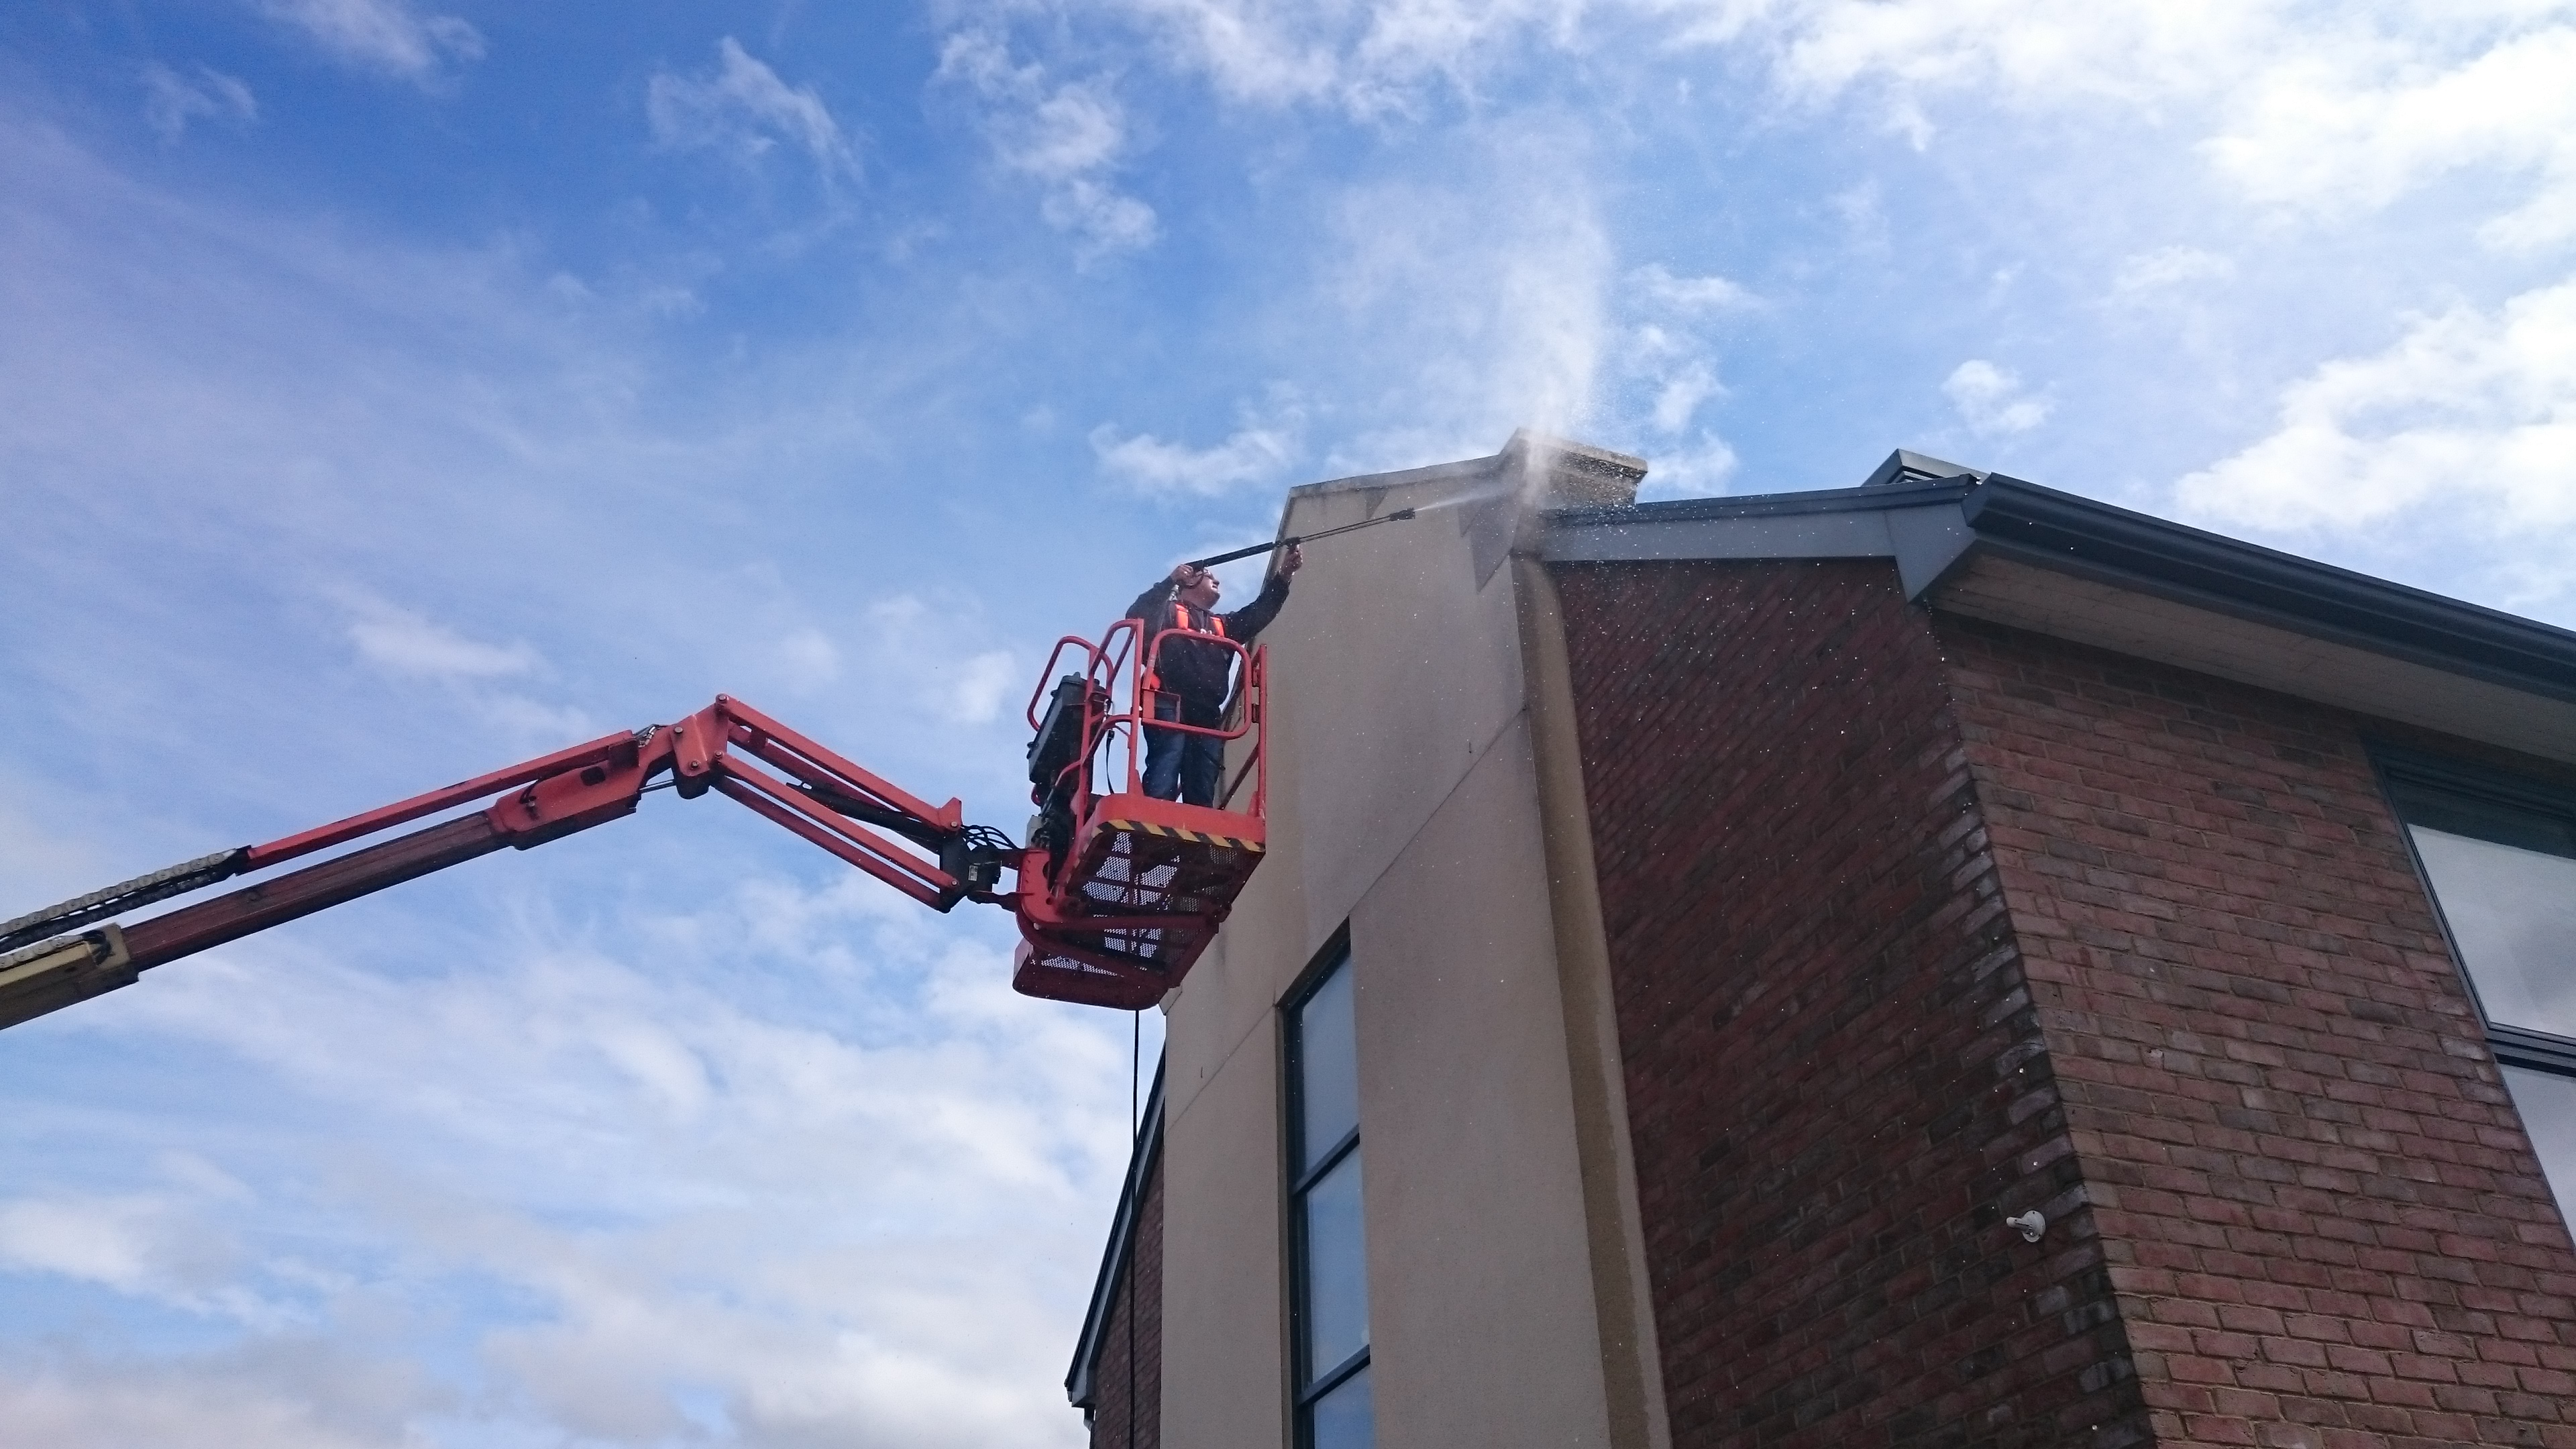 IPAF technician carries out external building cleaning at height using the latest pressure washing technology